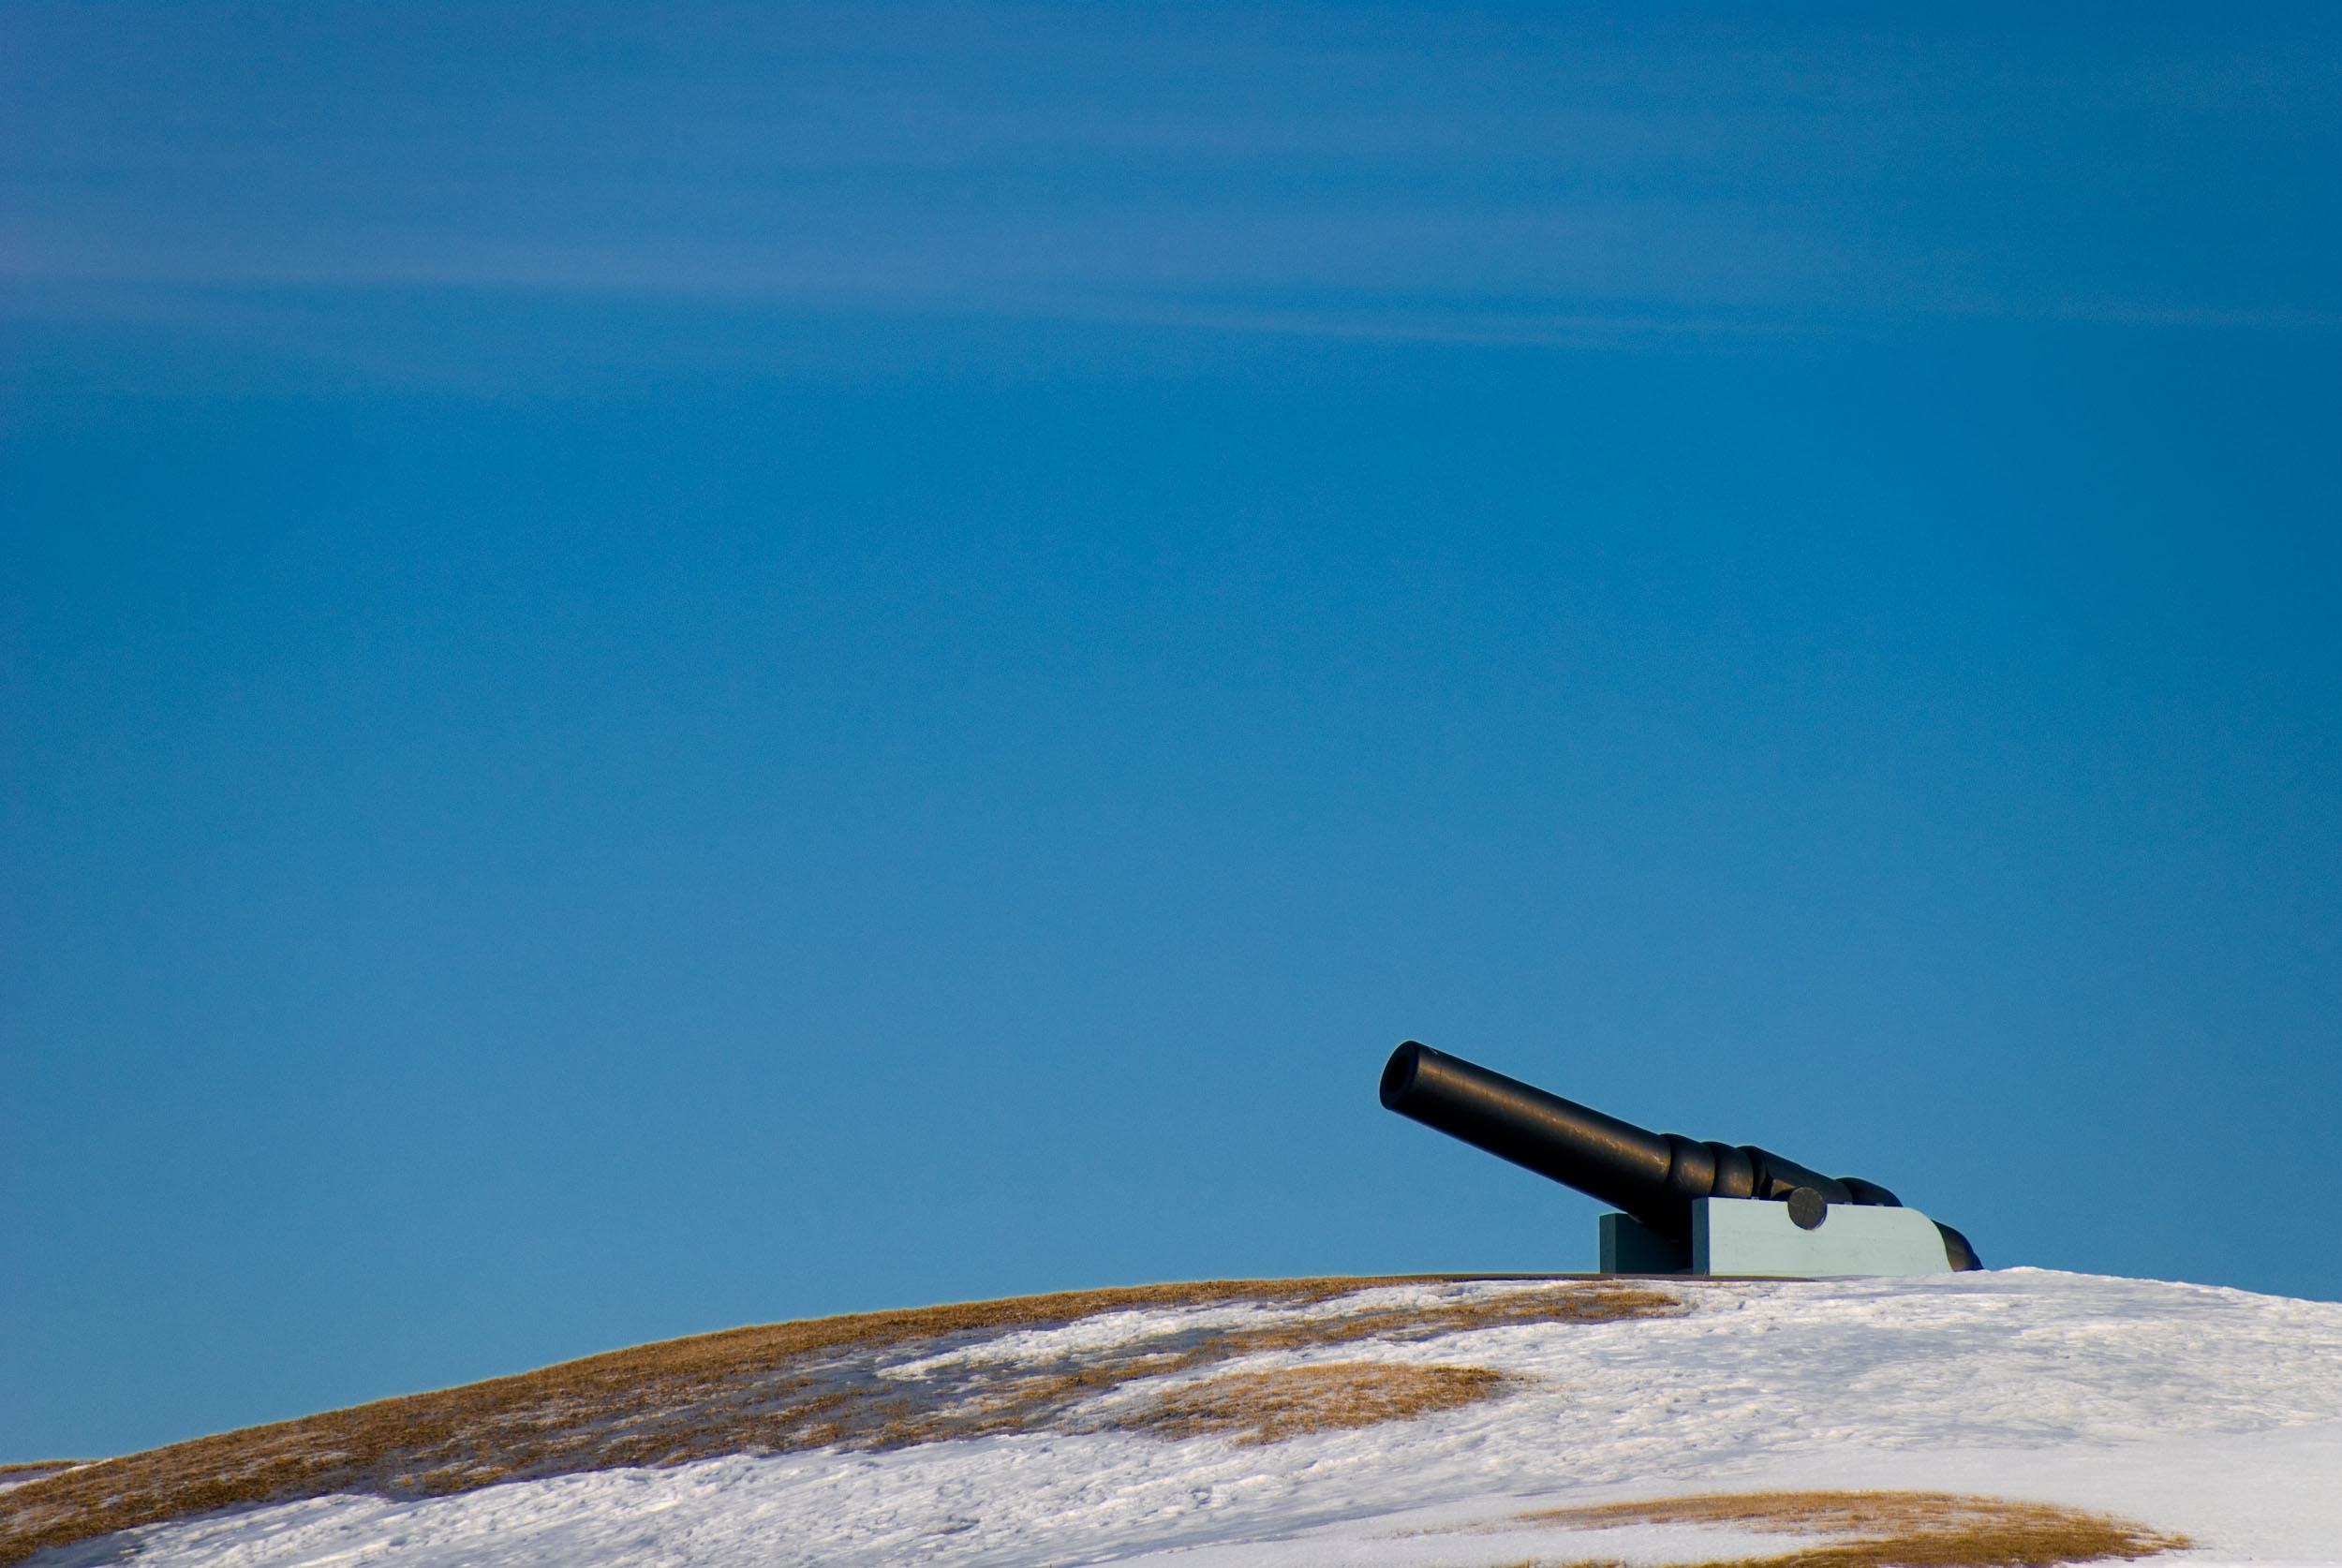 During one of the coldest winter's in recent memory, I took a trip to one of Canada's colder cities, Quebec City. It's a view of one of the cannons of the Citadelle of Quebec from the Plains of Abraham.